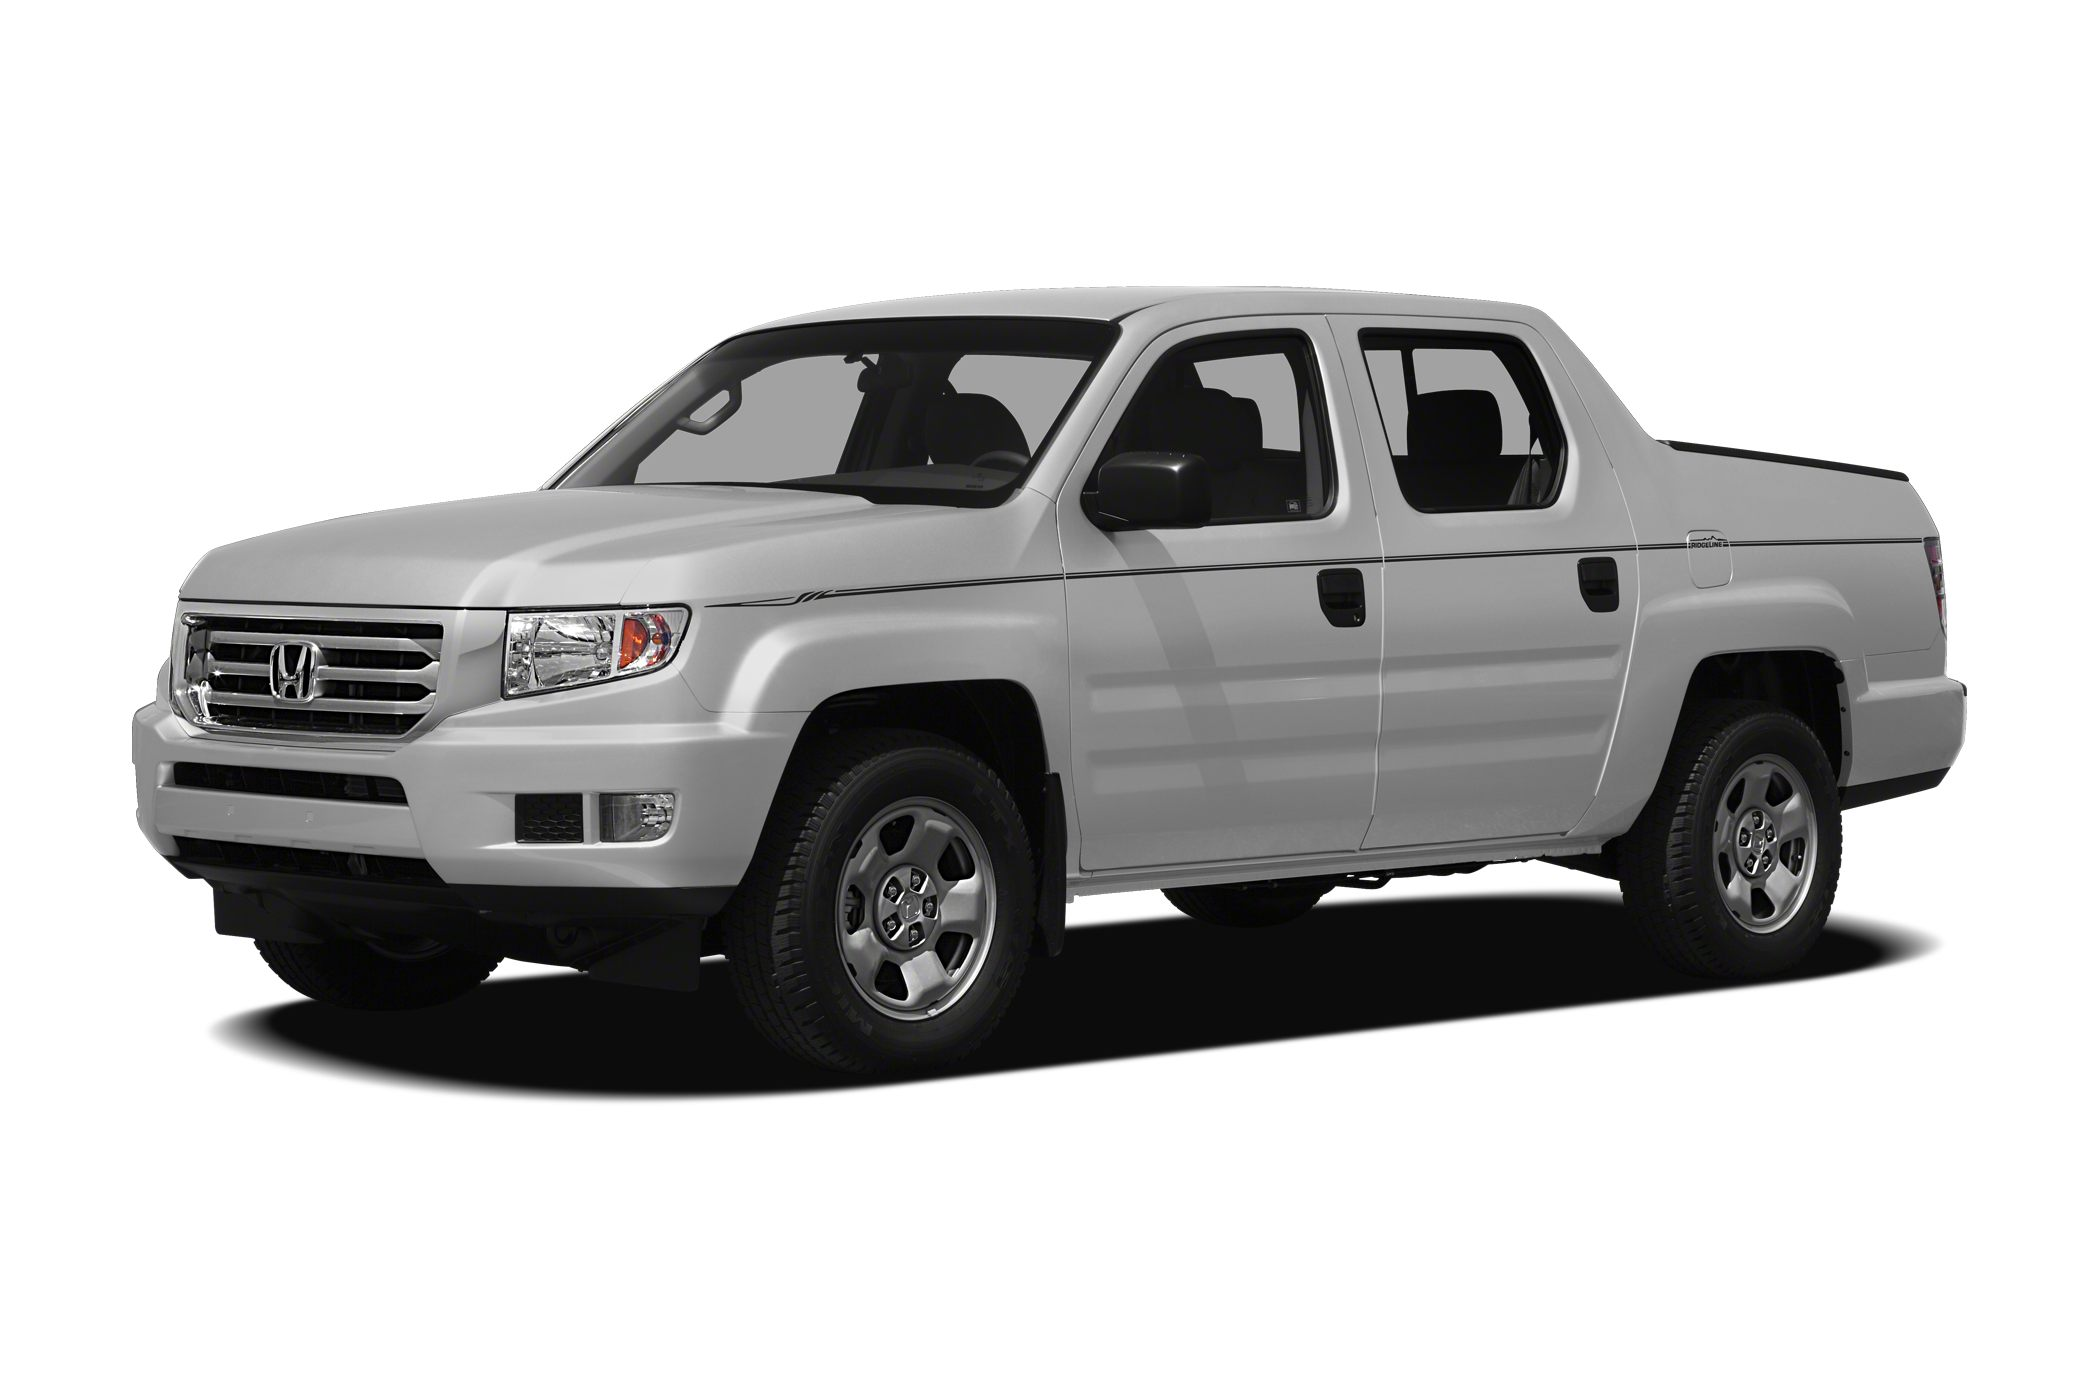 2012 Honda Ridgeline RTL Crew Cab Pickup for sale in Roswell for $33,999 with 21,285 miles